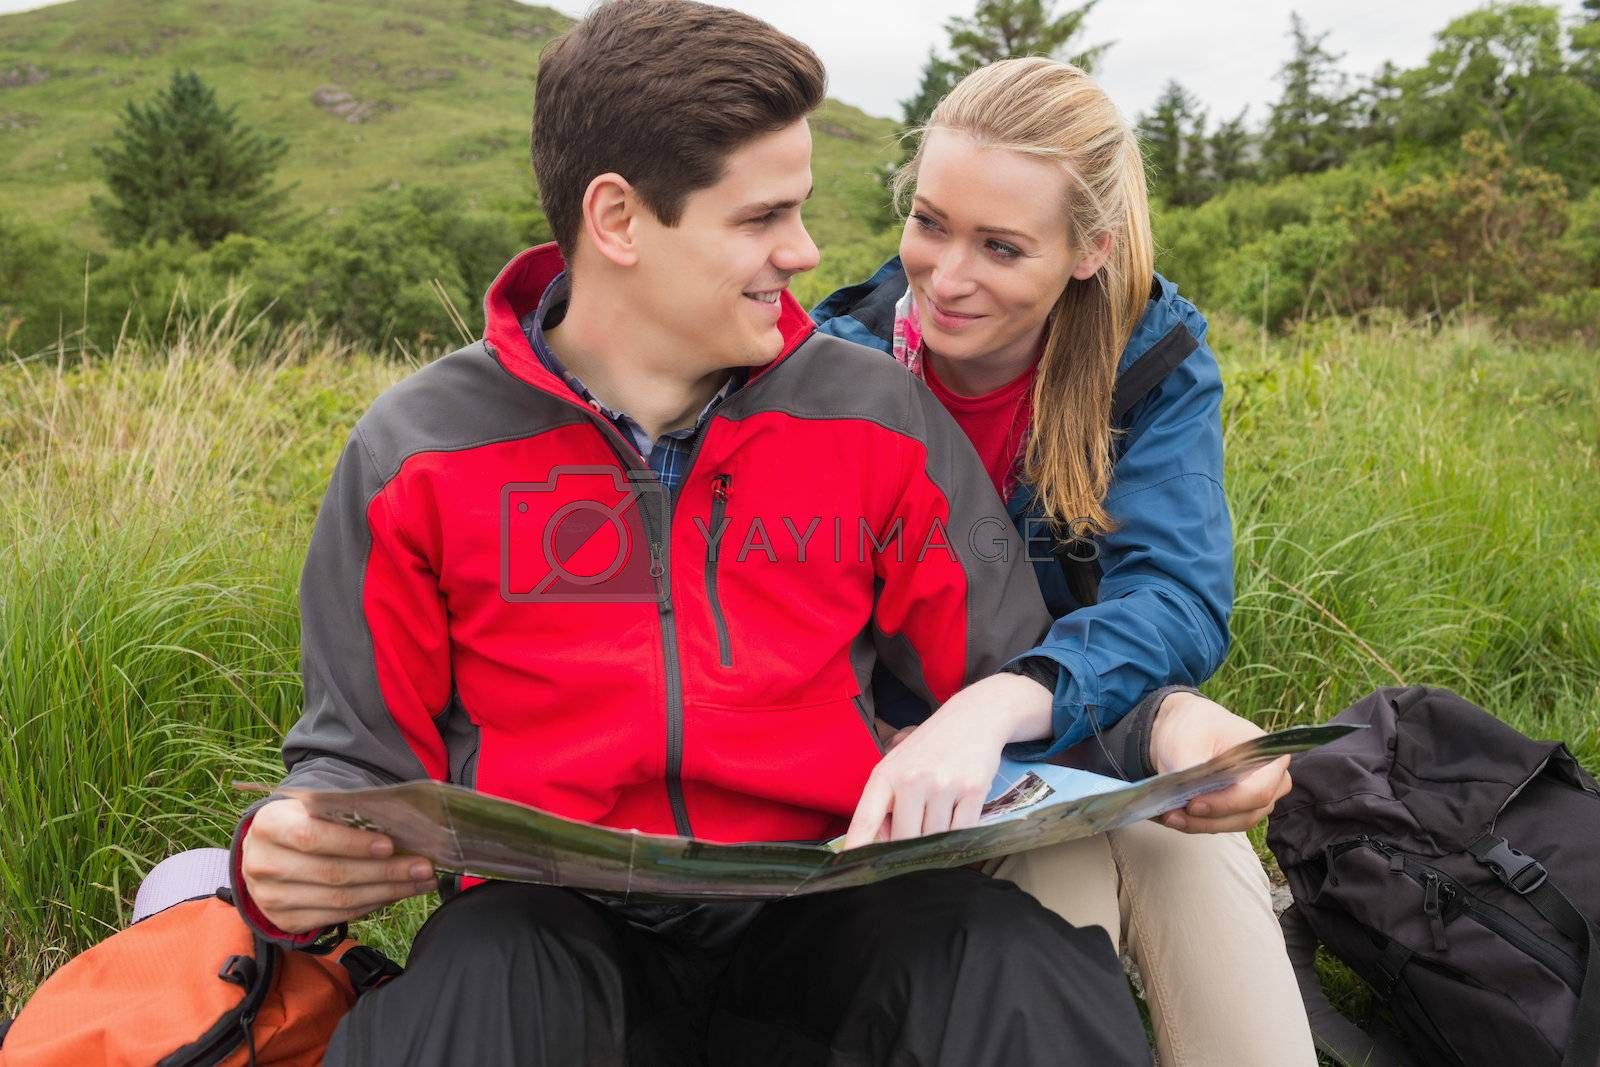 Smiling couple taking a break on hike to look at map by Wavebreakmedia